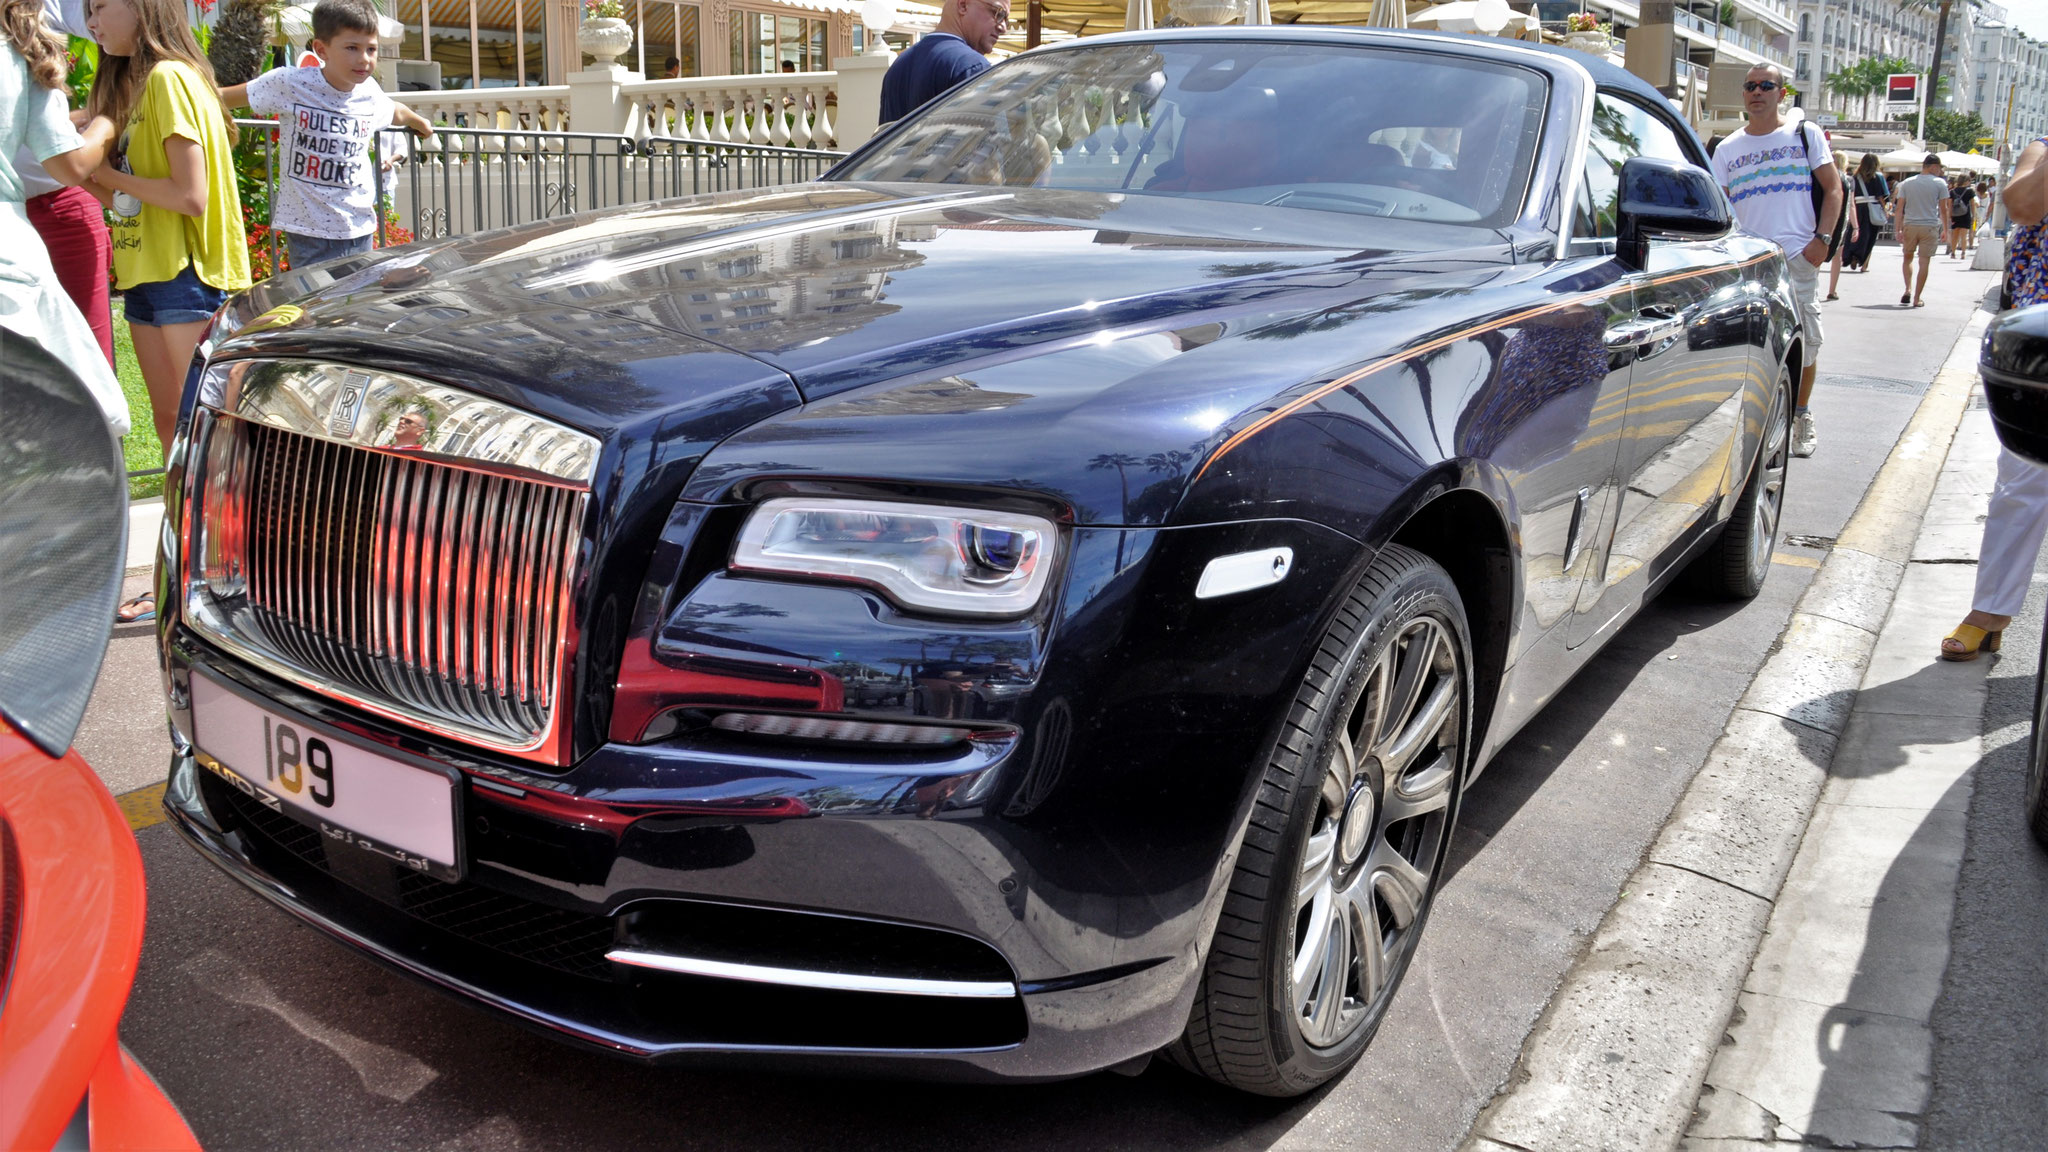 Rolls Royce Dawn - I89 (GB)